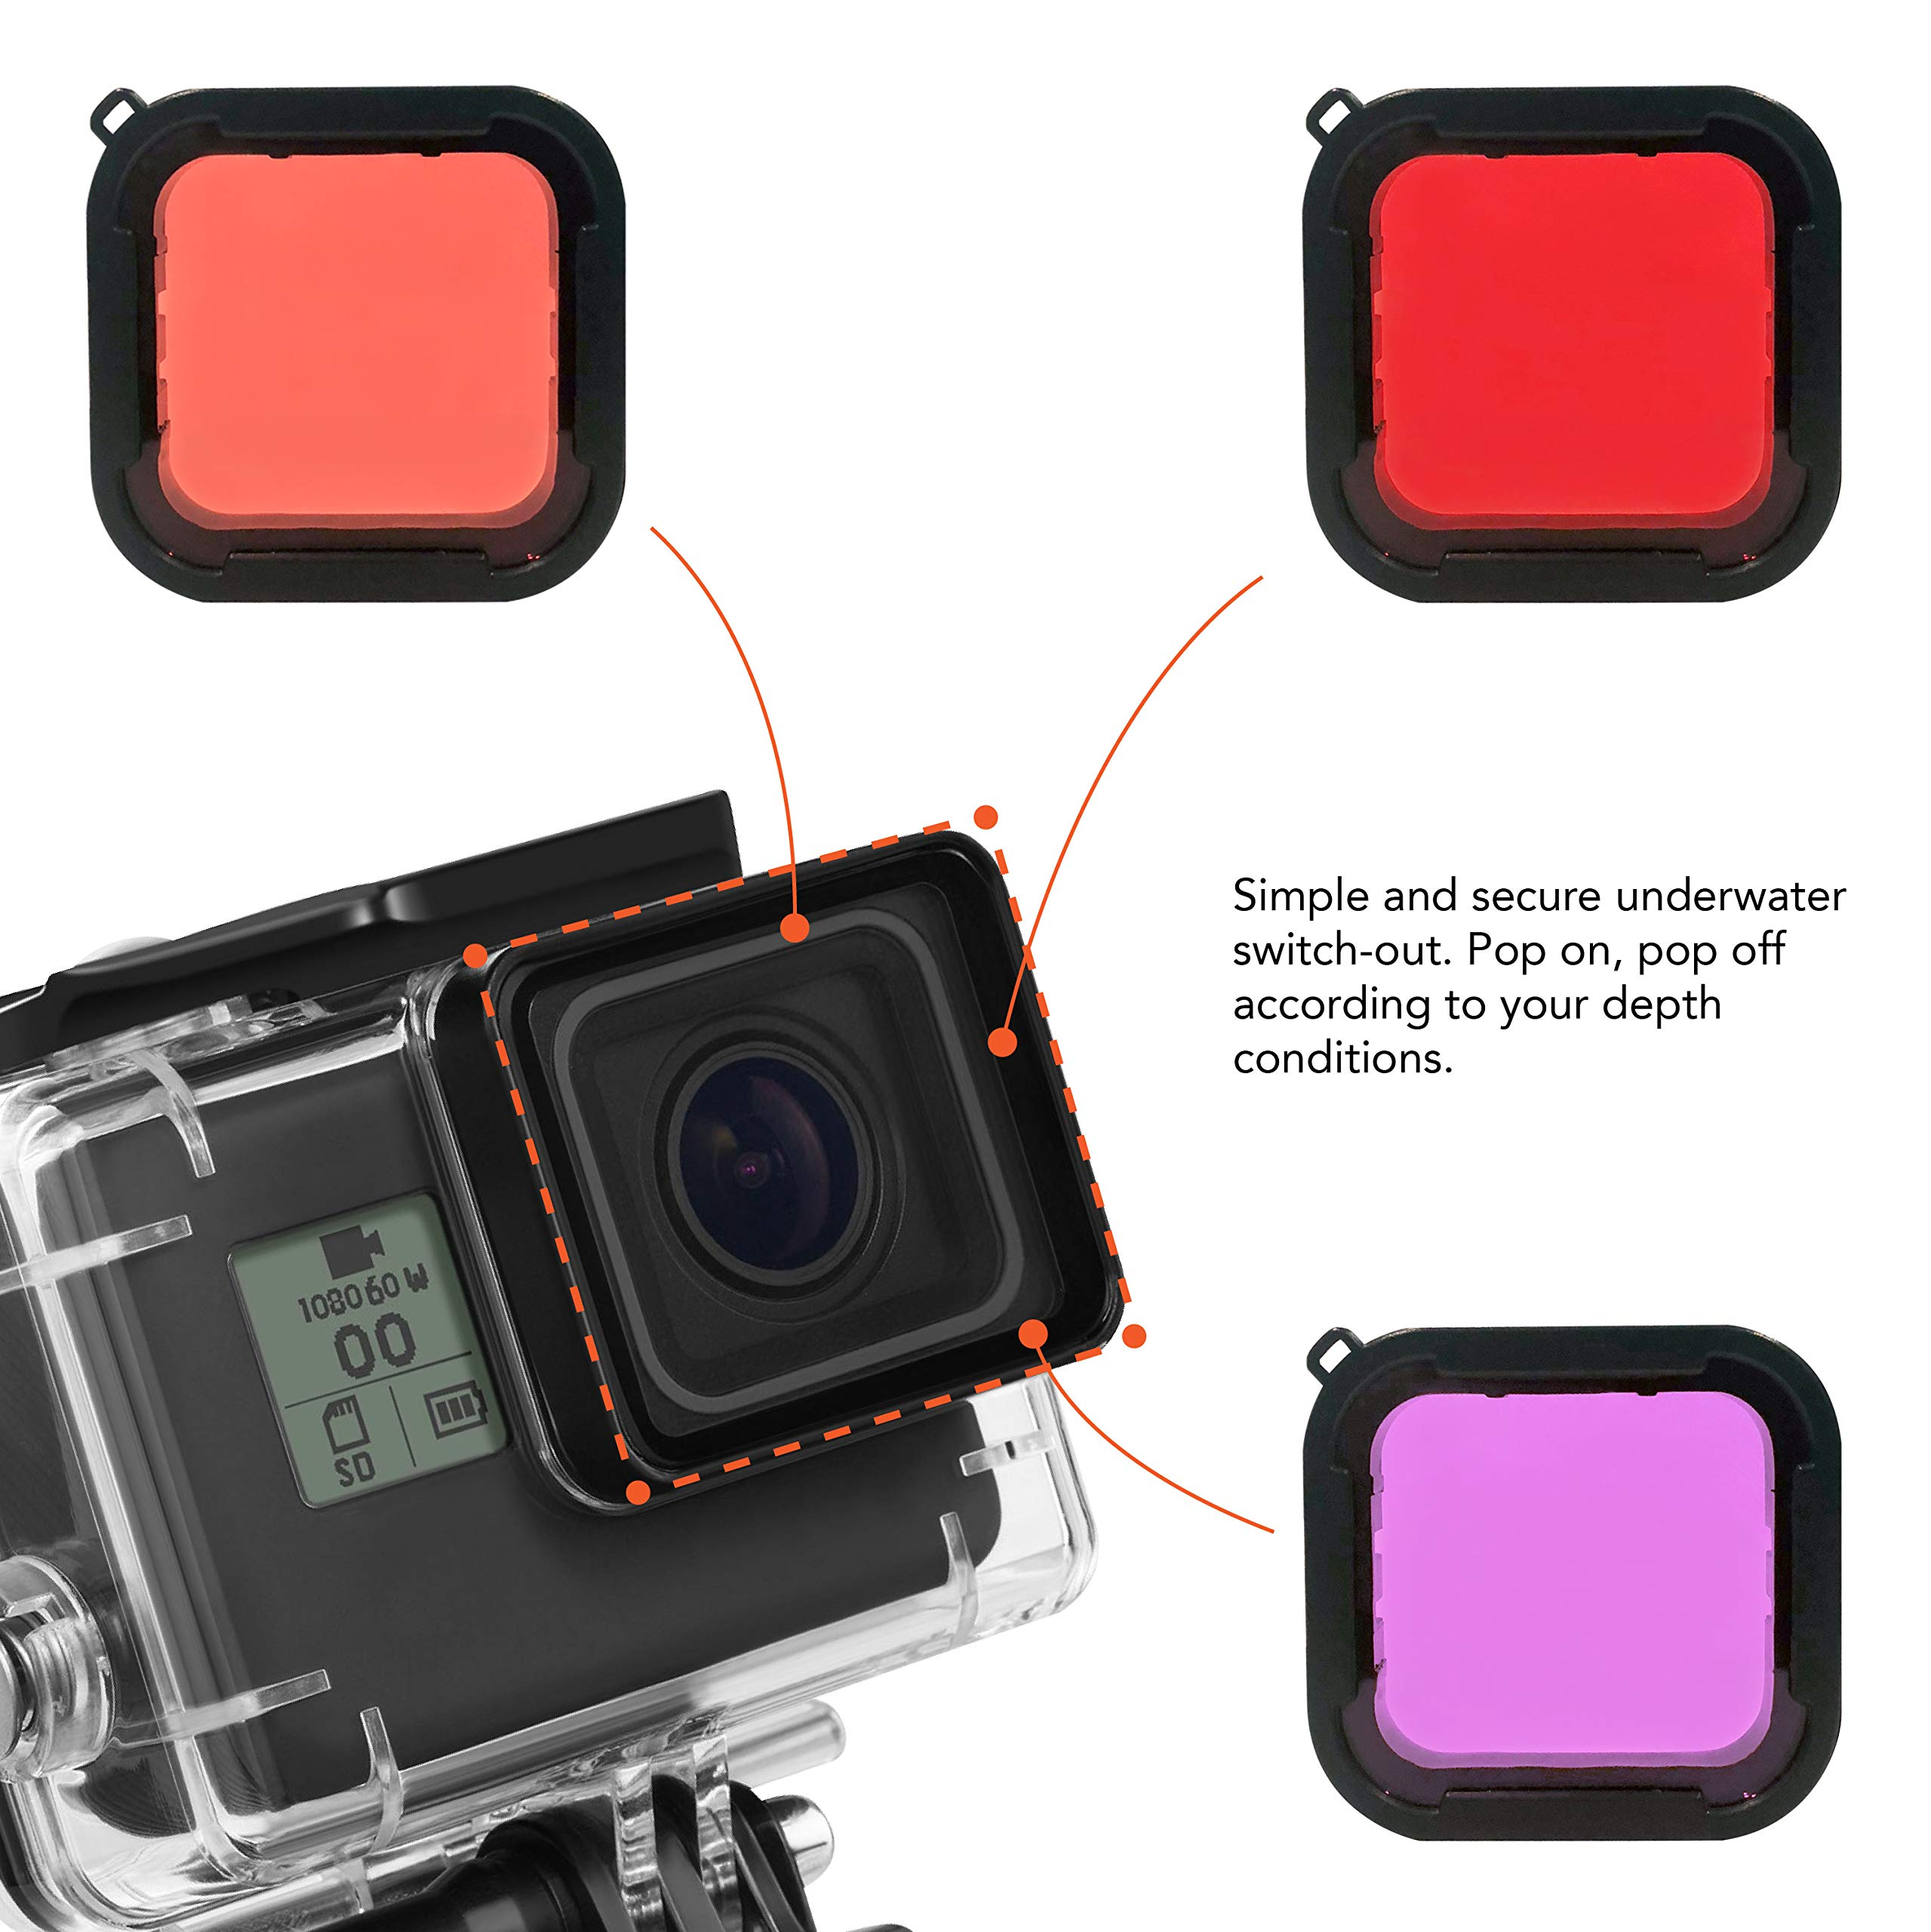 Kula Co. 3 Pack Scuba Dive Filter for GoPro Hero 7 Black/GoPro Hero 6/Hero 5 Super Suit Dive Housing - Red, Light Red, Magenta Filter - Enhances Colors for Underwater Video and Photographs by Kula Co.